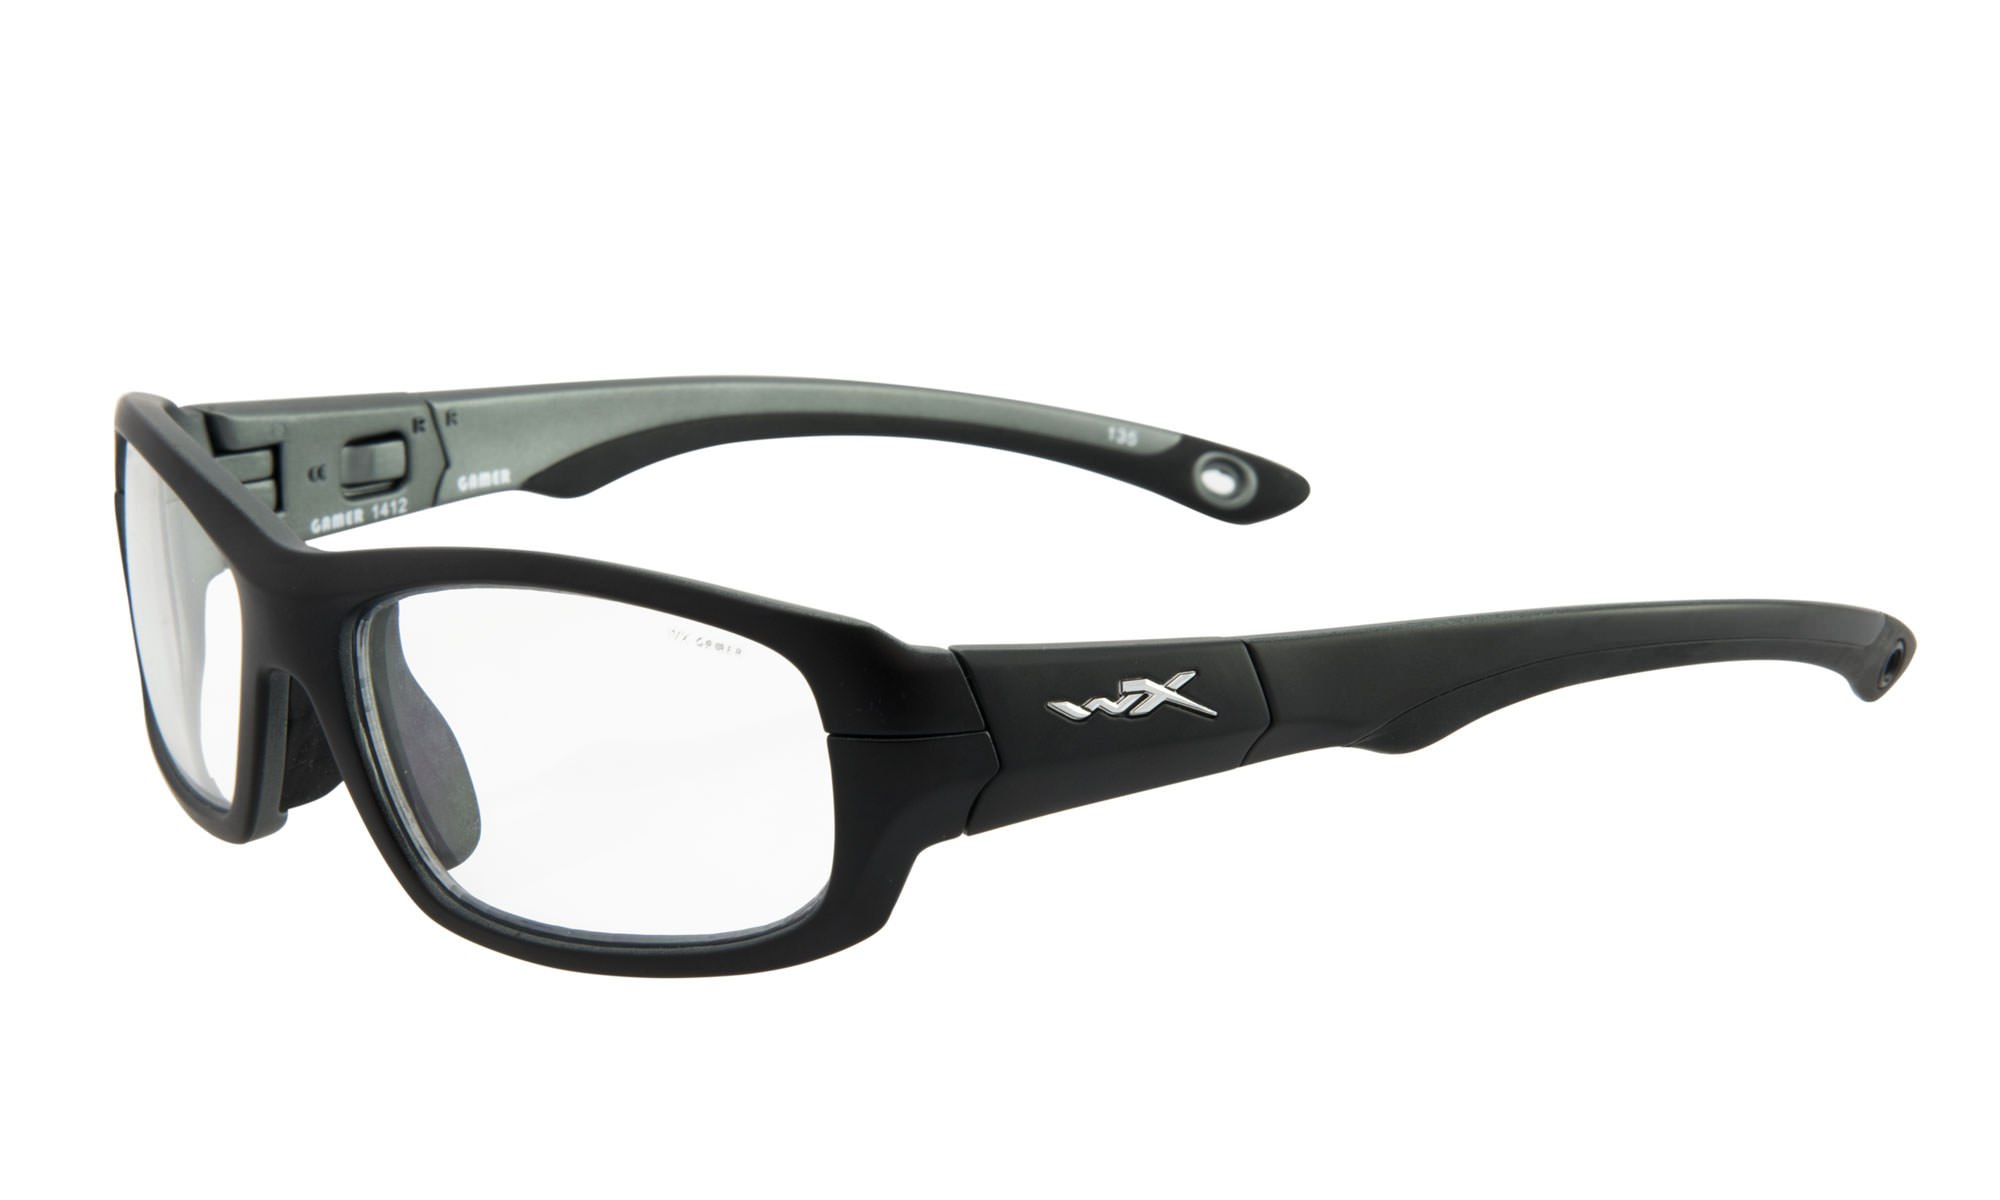 8682086c1239c Wiley-X WX Gamer Matte Black and Dark Silver with Clear Lenses